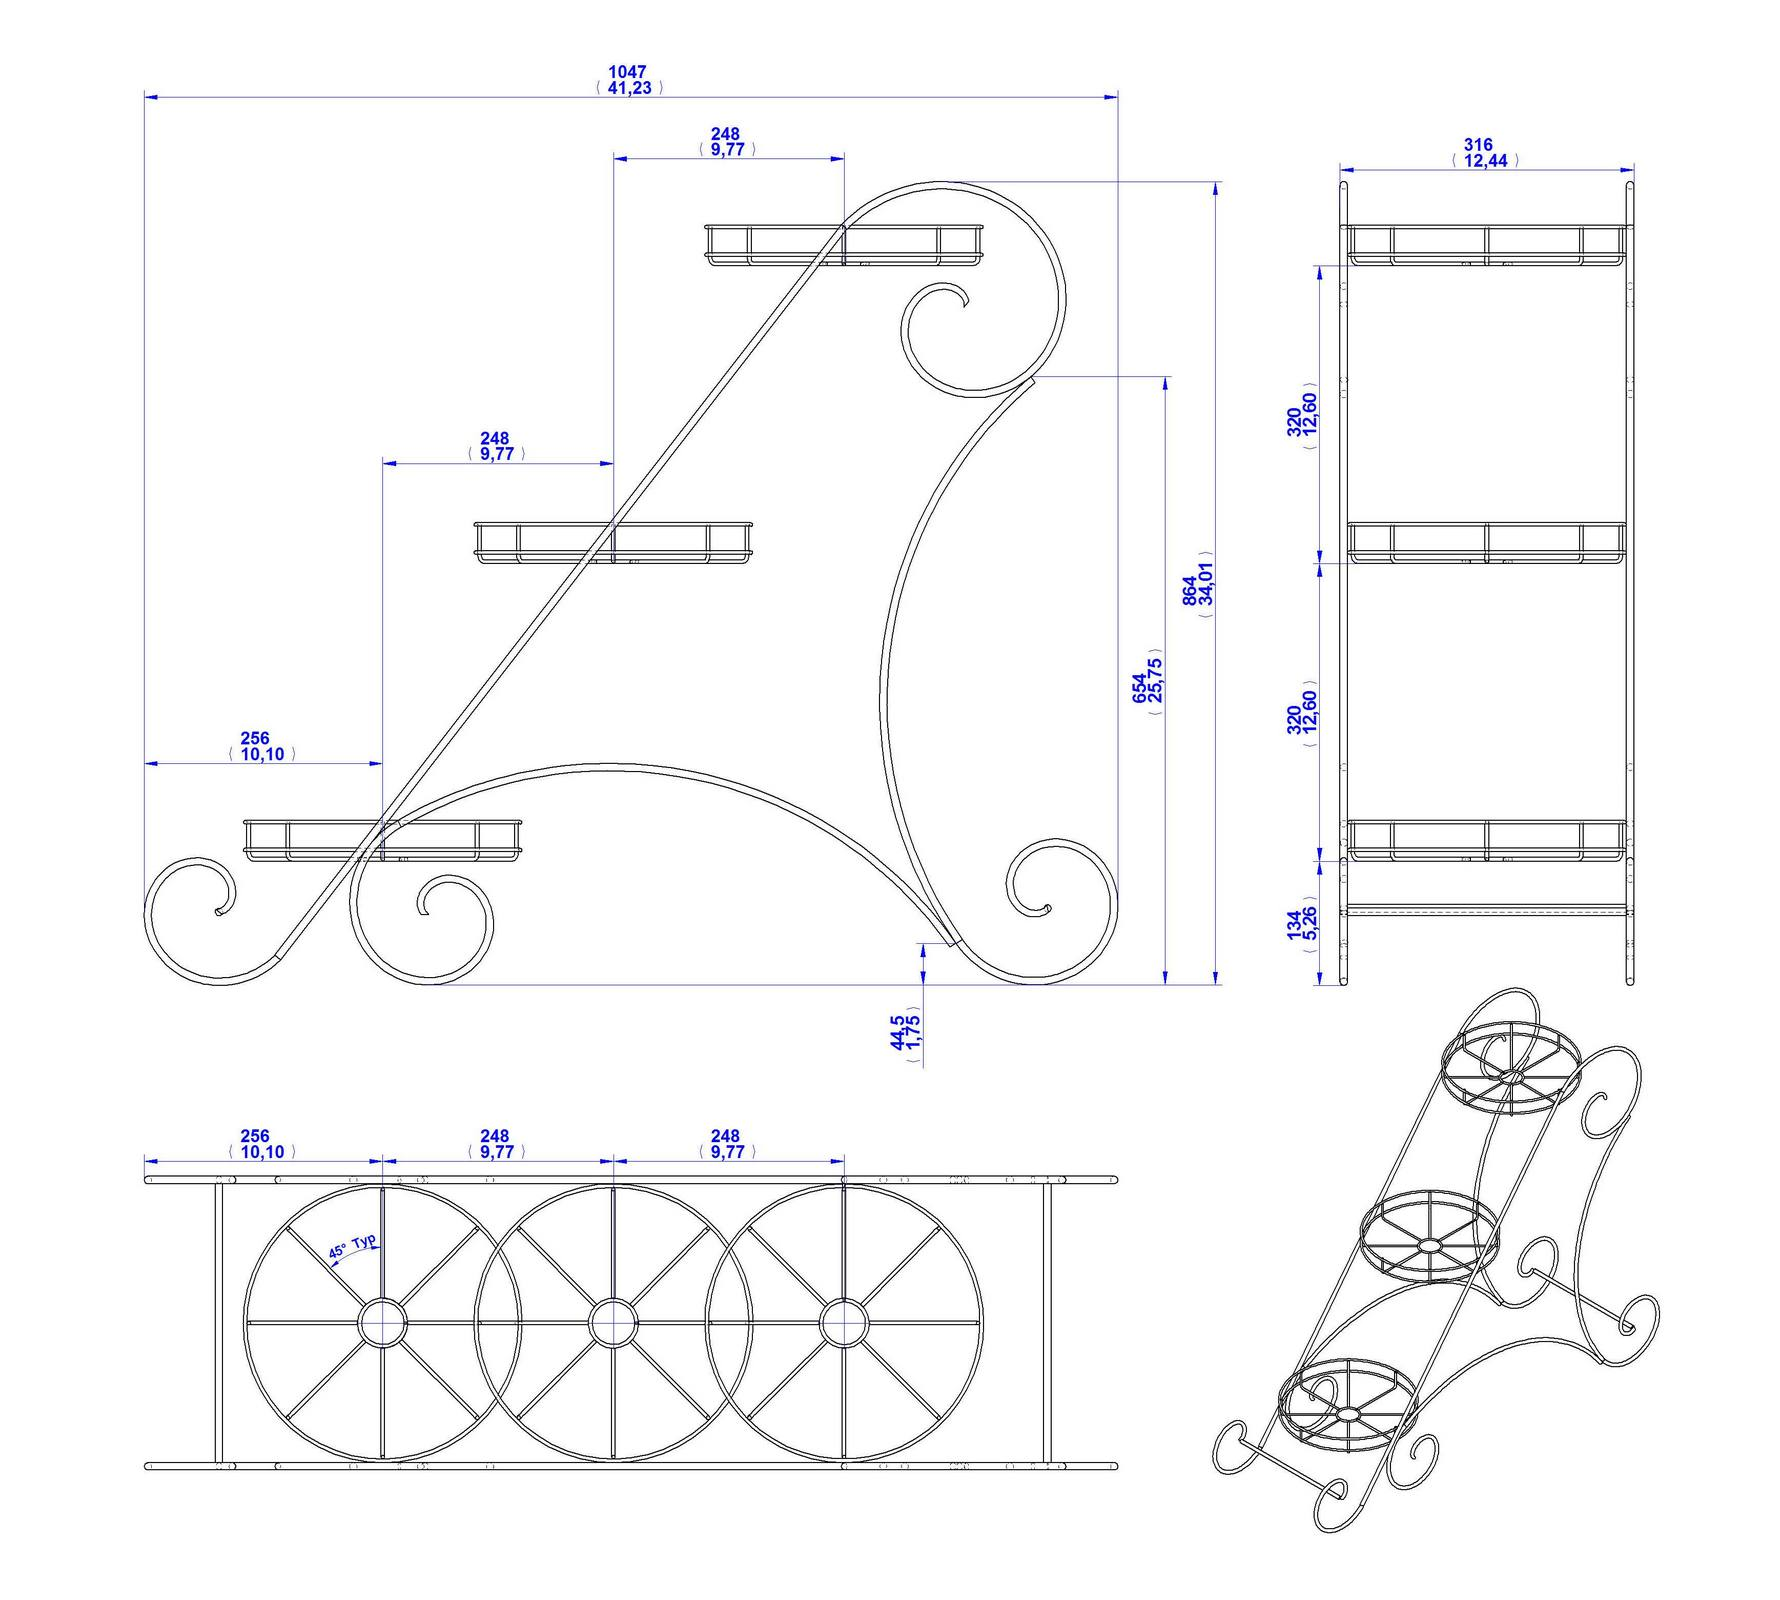 ... Plans and Simple Project: Know More Arts crafts furniture plans free